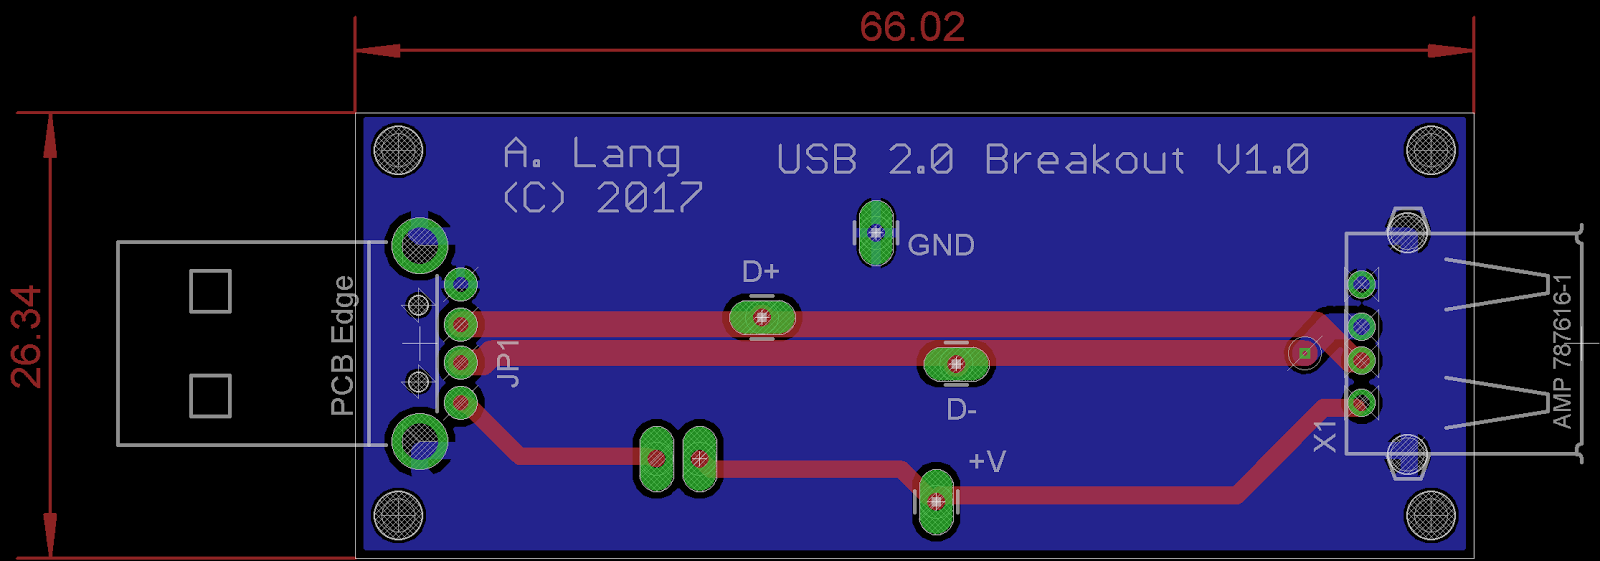 The Answer Is 42 Designing A Usb Breakout Board Pcb Layout Design New Style For 20162017 Edit I Have Updated After Some Valuable Feedback From Aamir Ahmed Khan Thank You Did Not Remember To Set Track Separation Distance